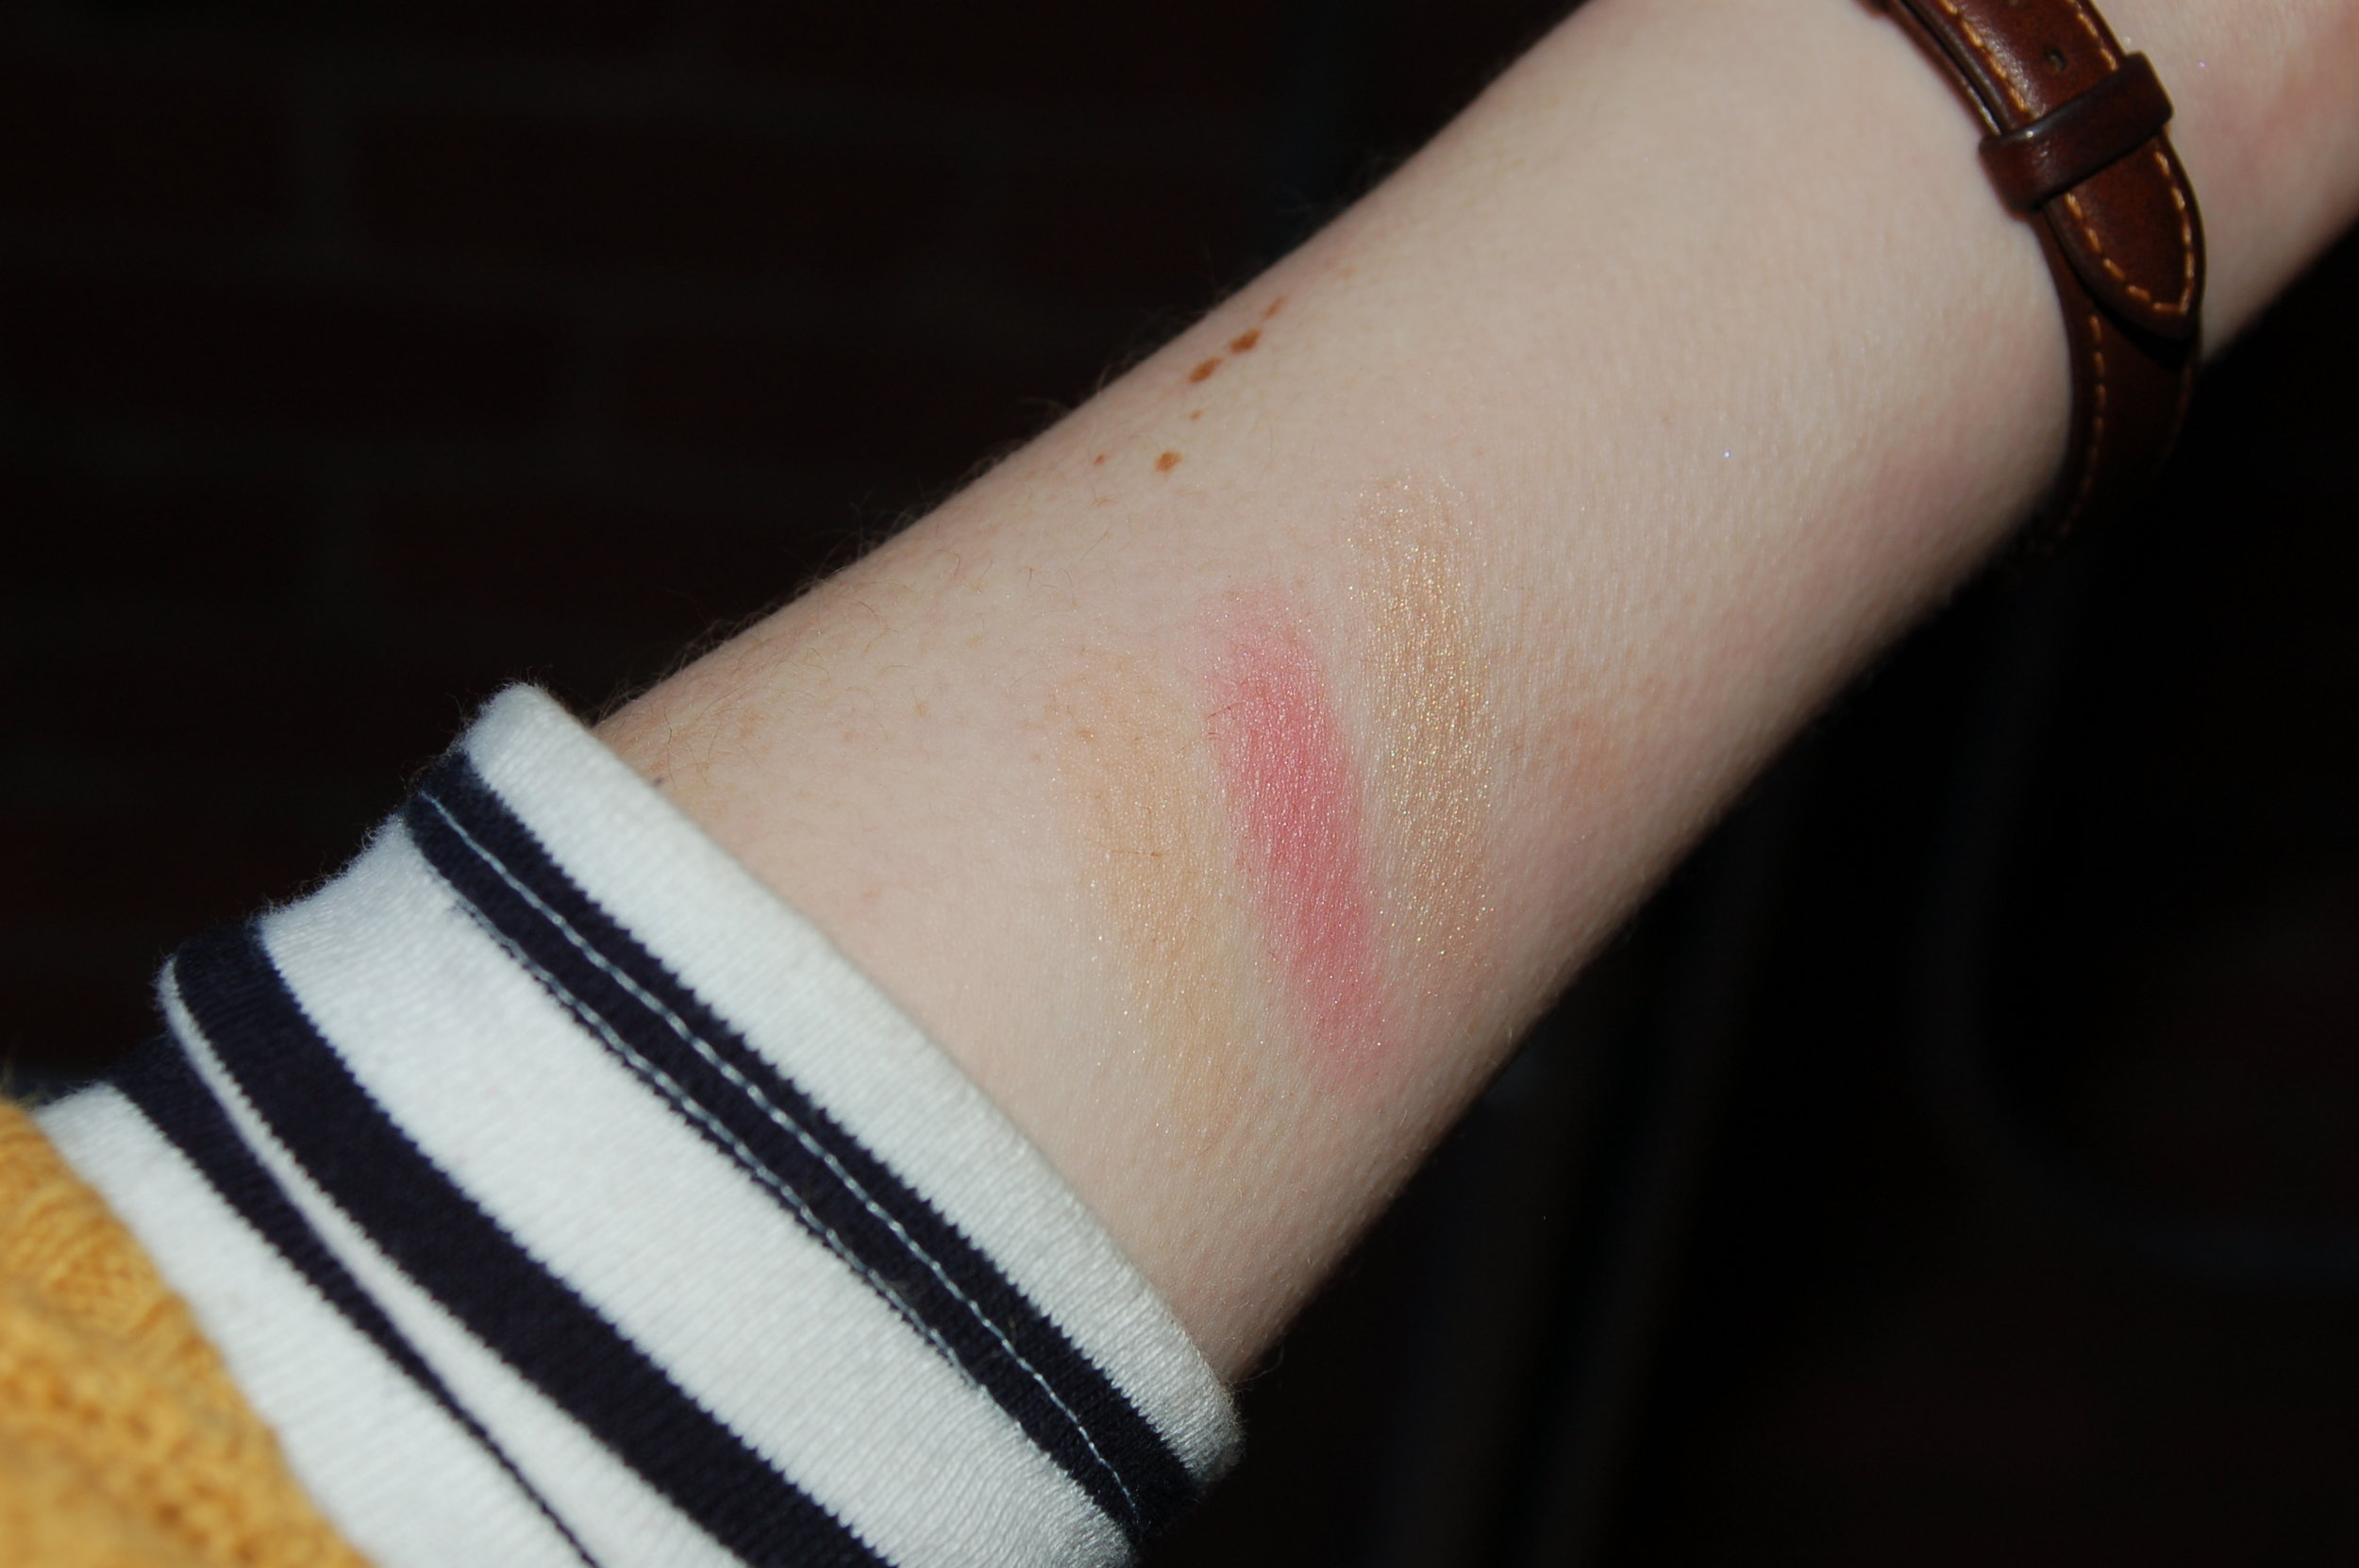 Bronzer/lighter blush, blush and highlighter with flash. It was tricky getting swatches of these!